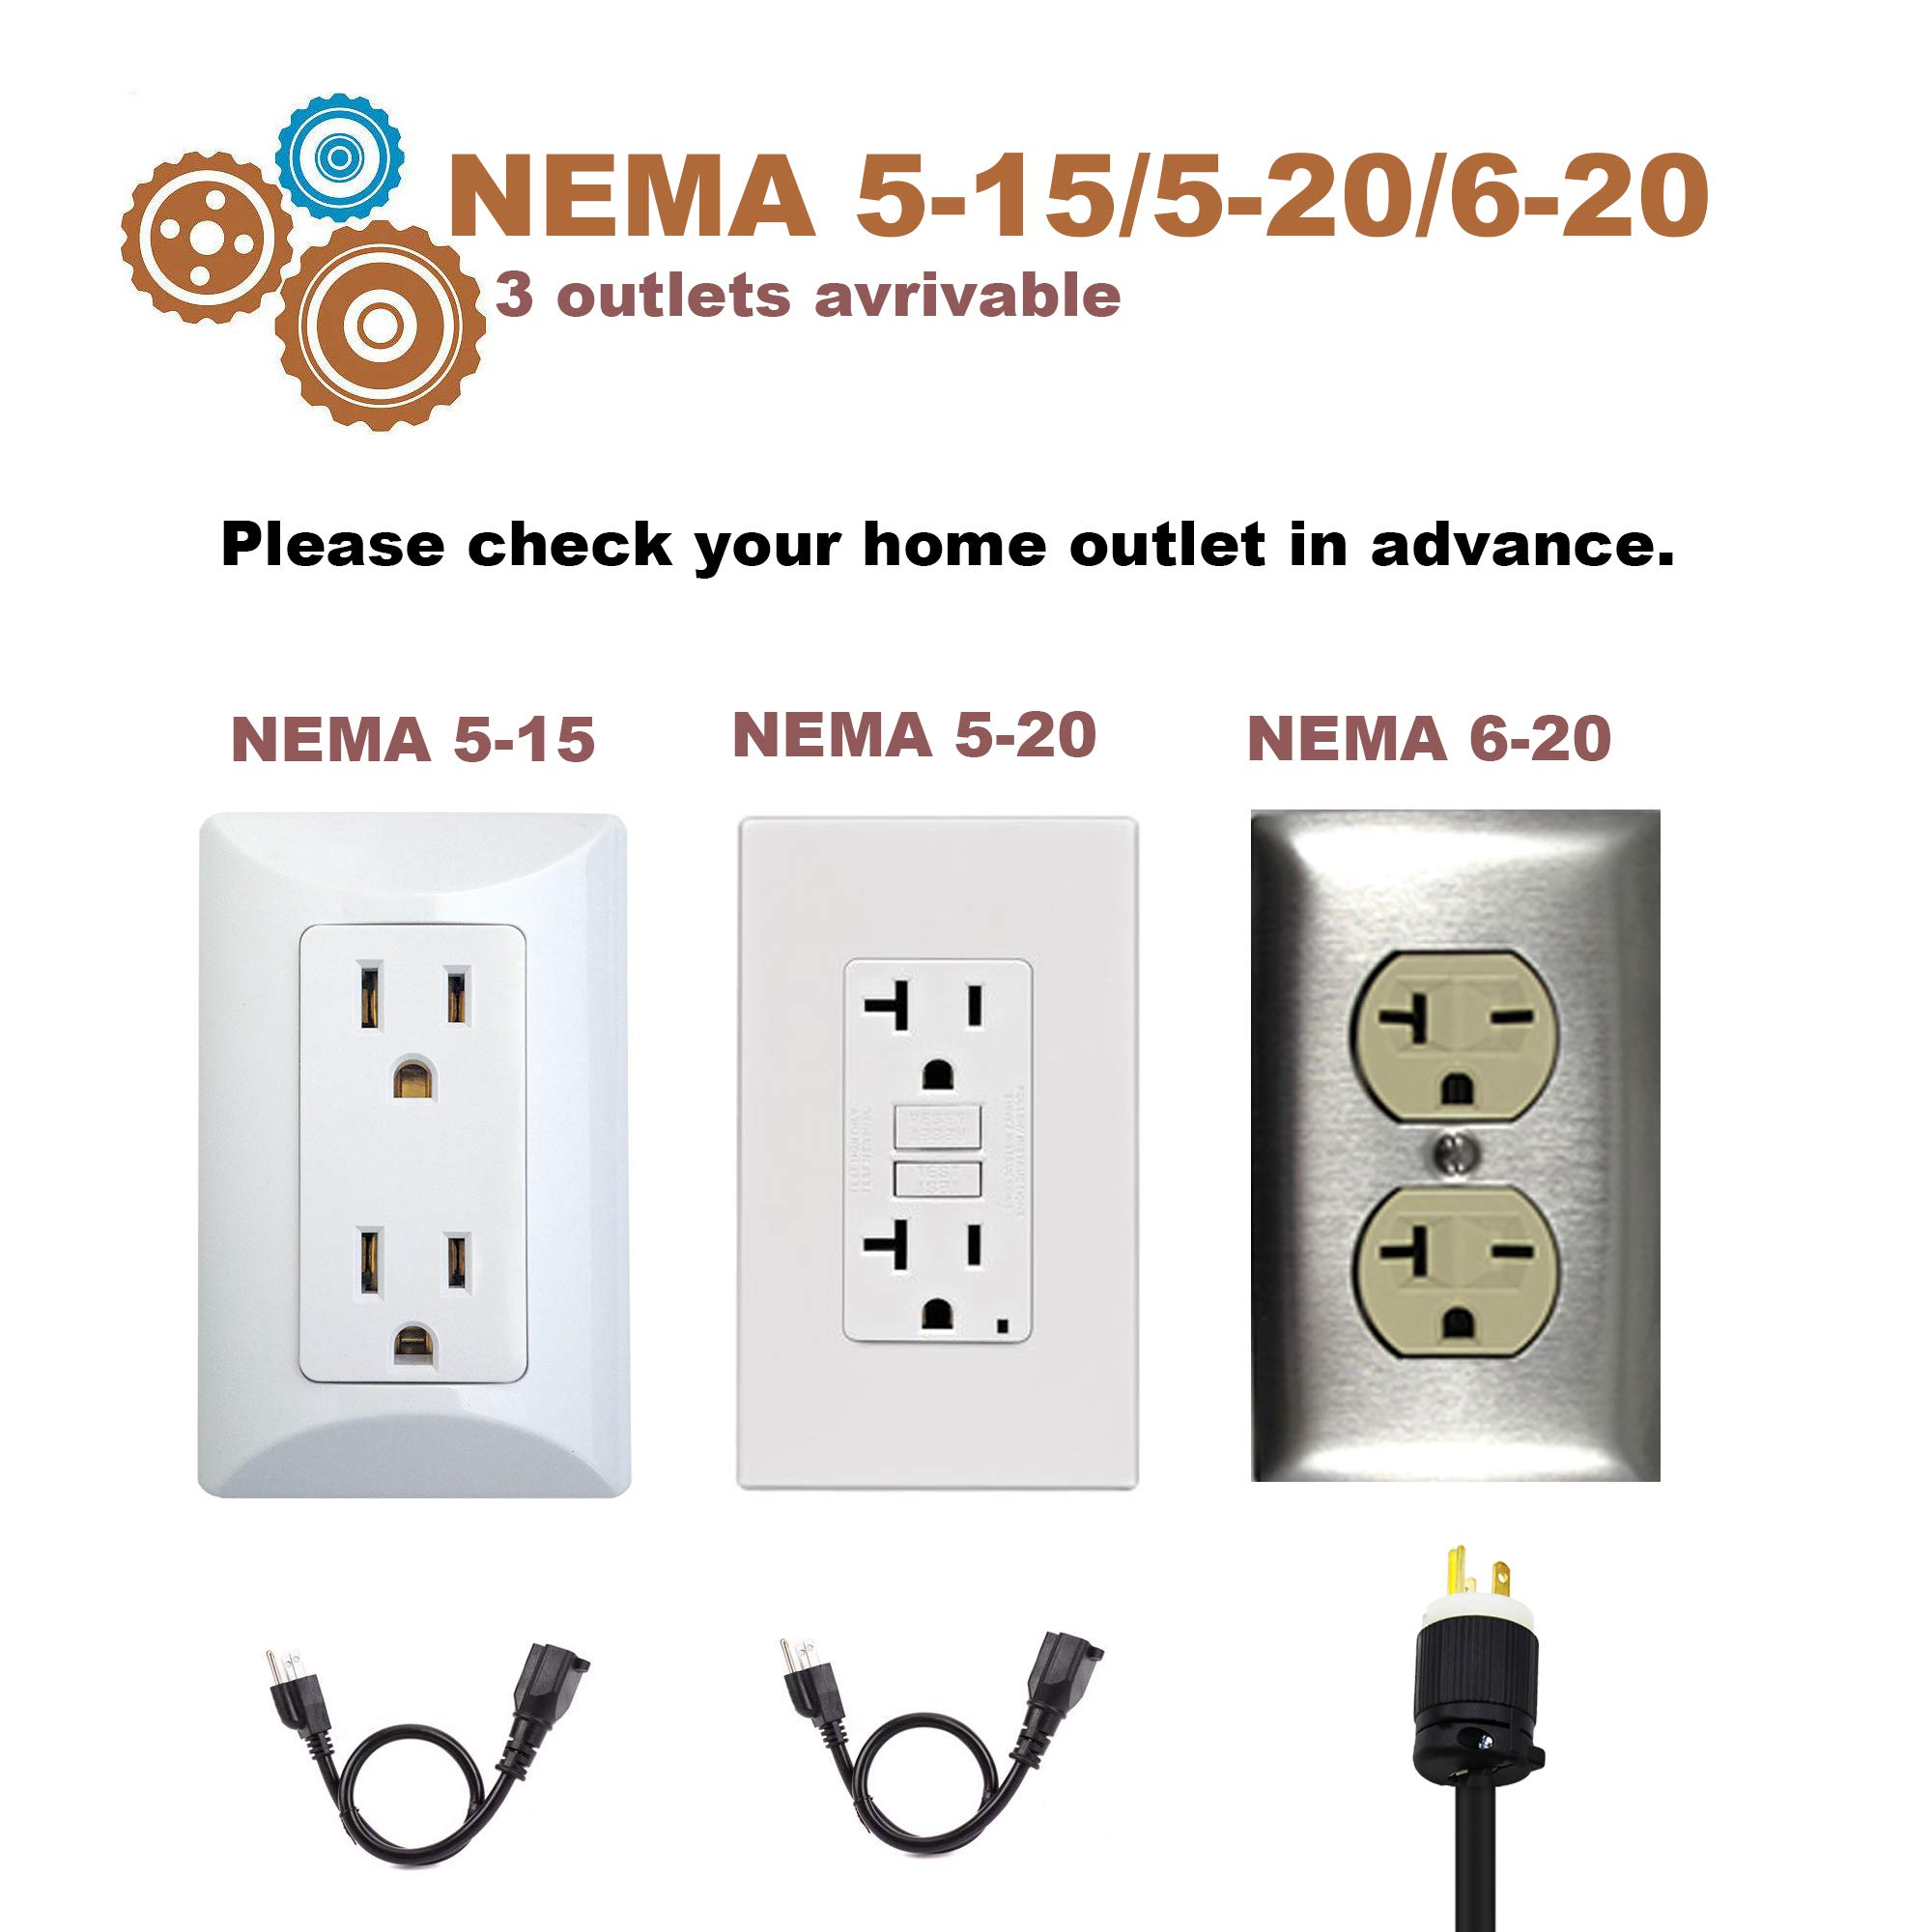 POTATO EV Charger, Level 2 Electric Vehicle Charging Station, NEMA6-20 Plug with Adapter for Level 1 (NEMA5-15,100-240V 3.8KW) Compatible with All EV Cars by POTATO (Image #7)